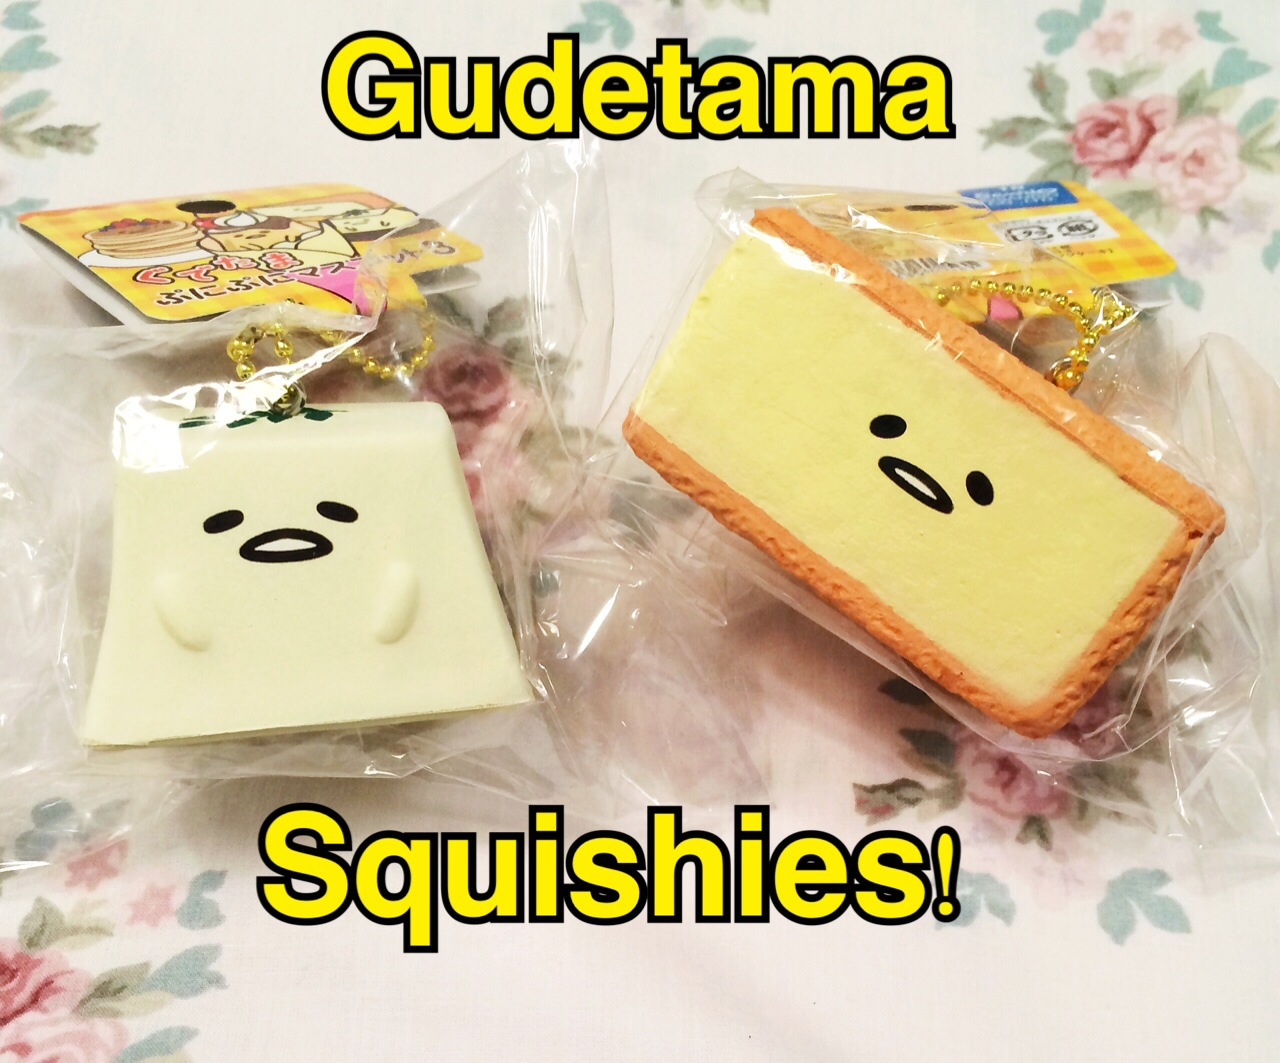 Peach Booty Reviews (  ?  ): Gudetama squishies! from Silly Squishies store Review